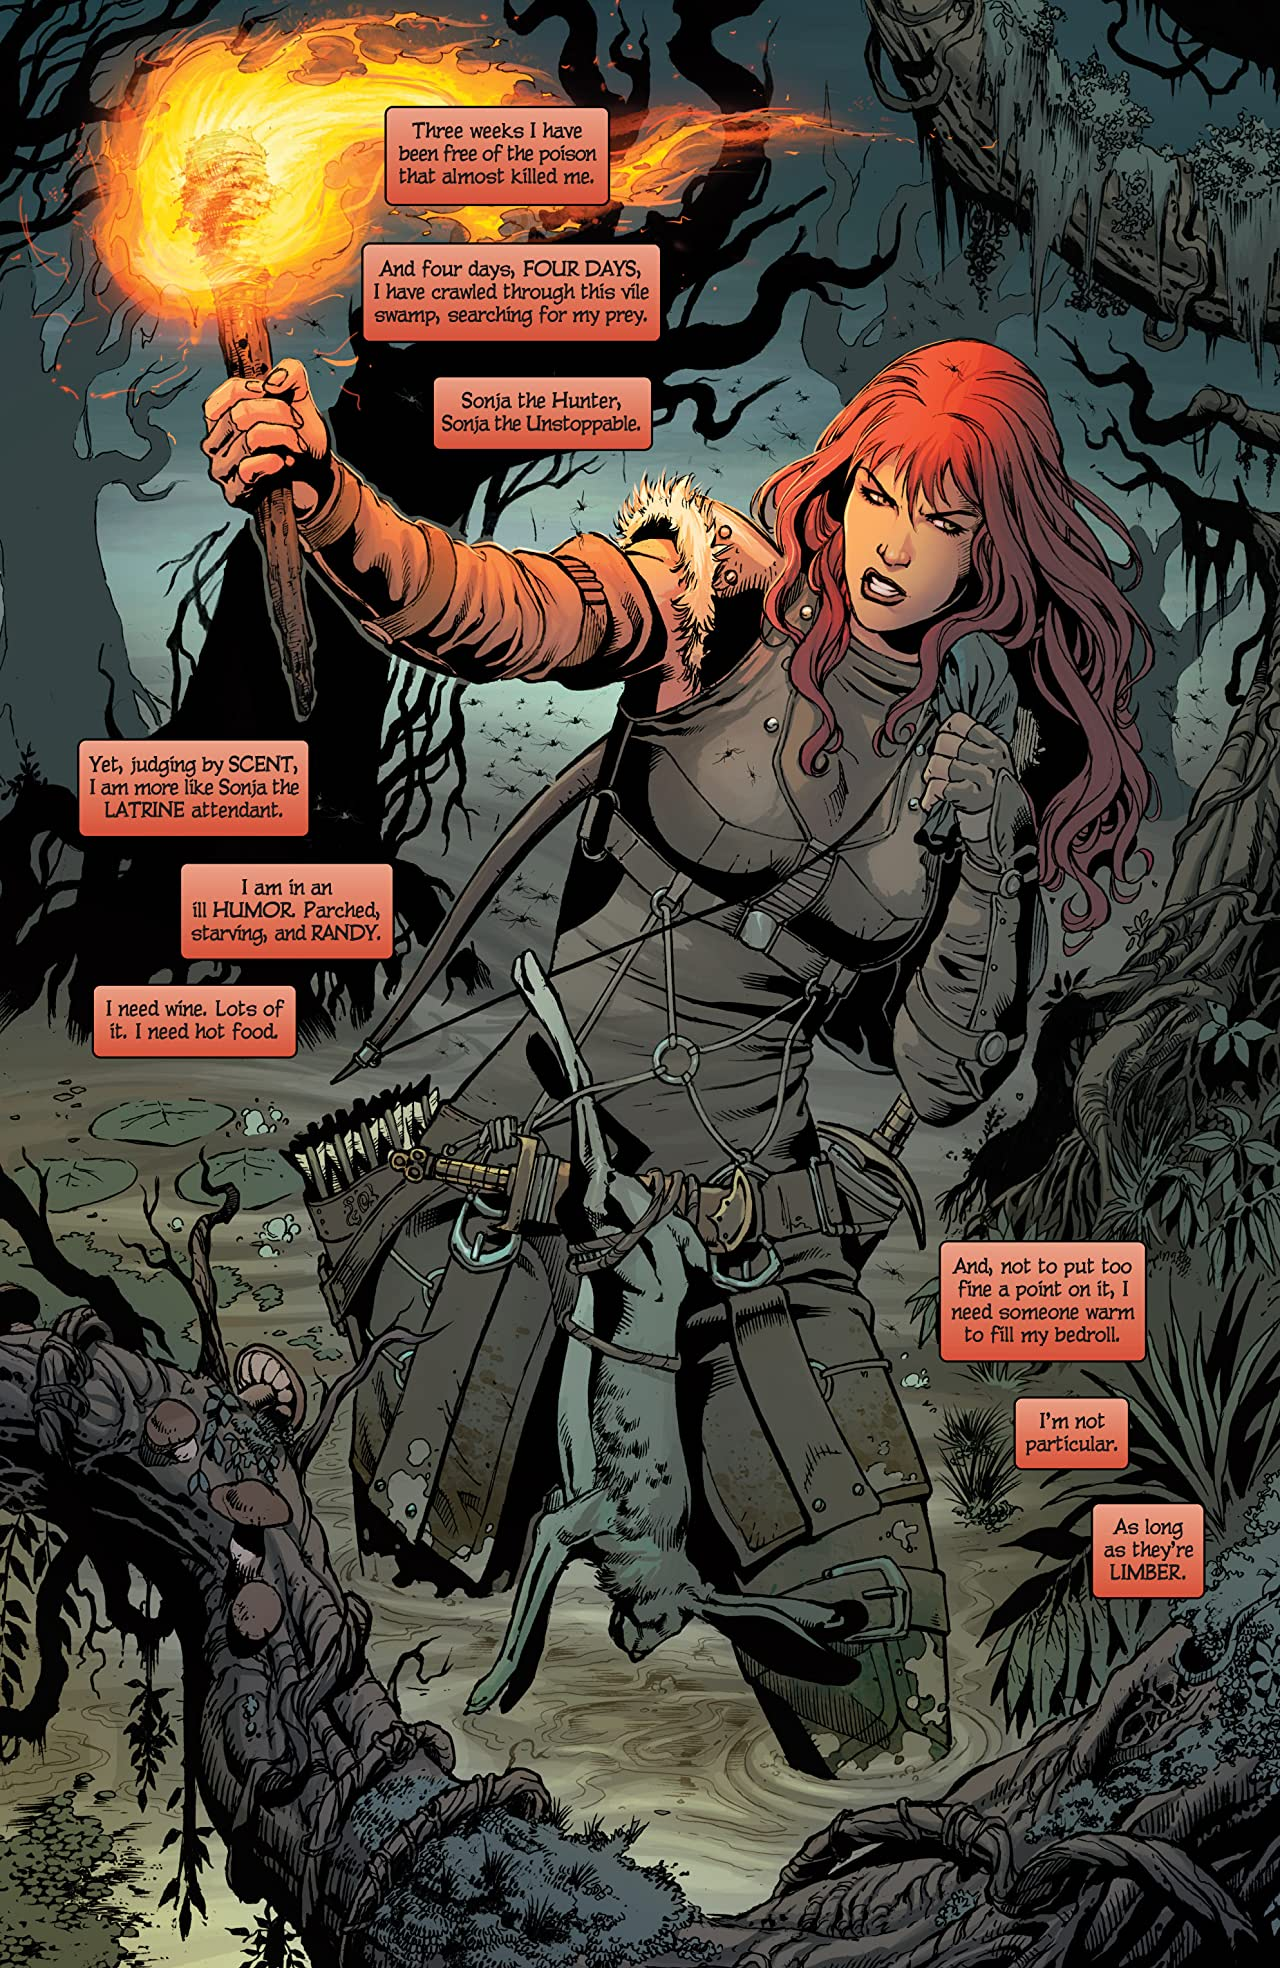 Red Sonja Vol. 2: The Art of Blood and Fire